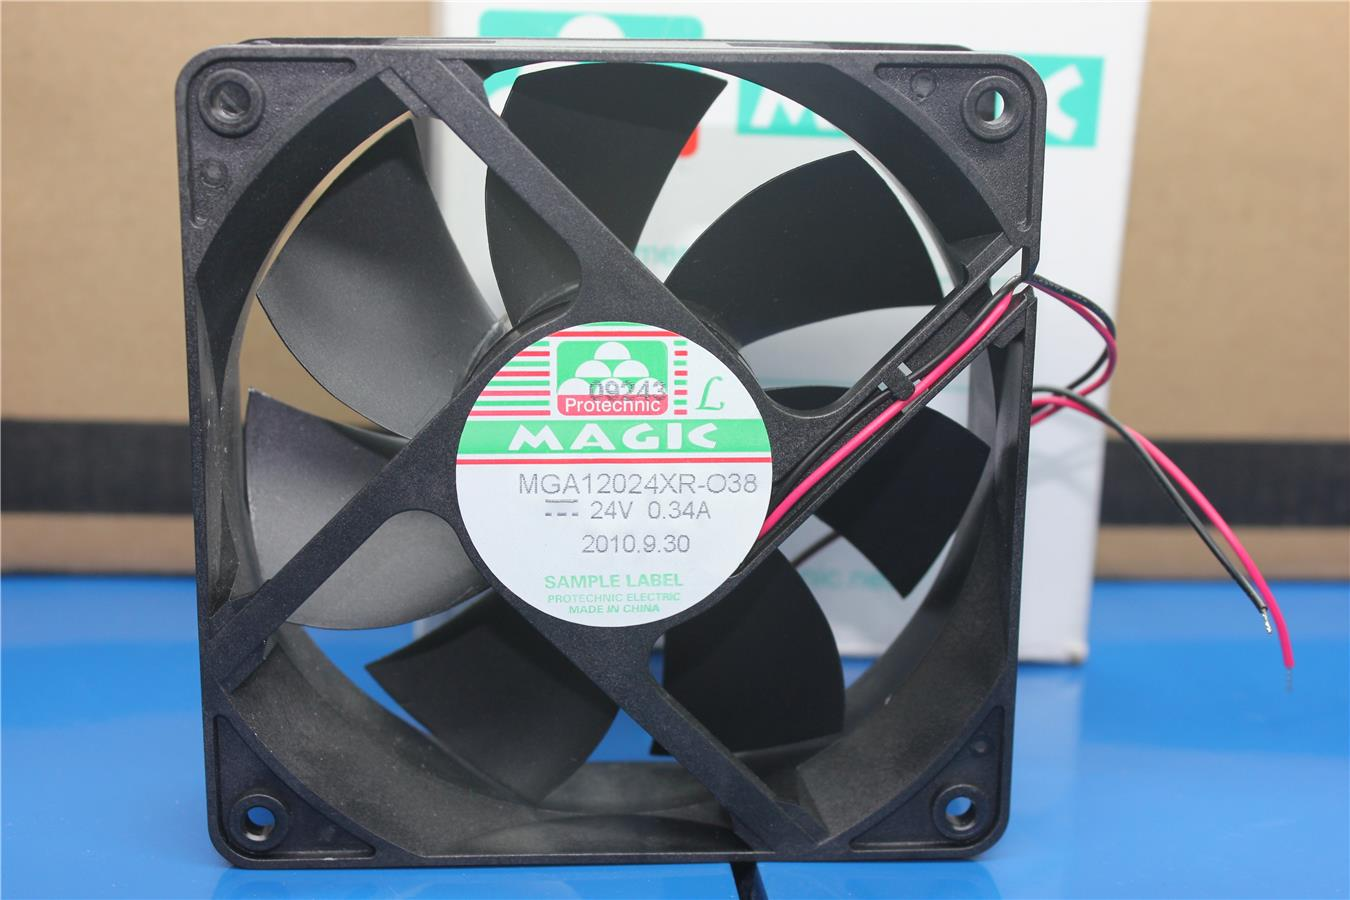 Magic MGA12024XB R-O38 24V 0.34A inverter chassis small fan